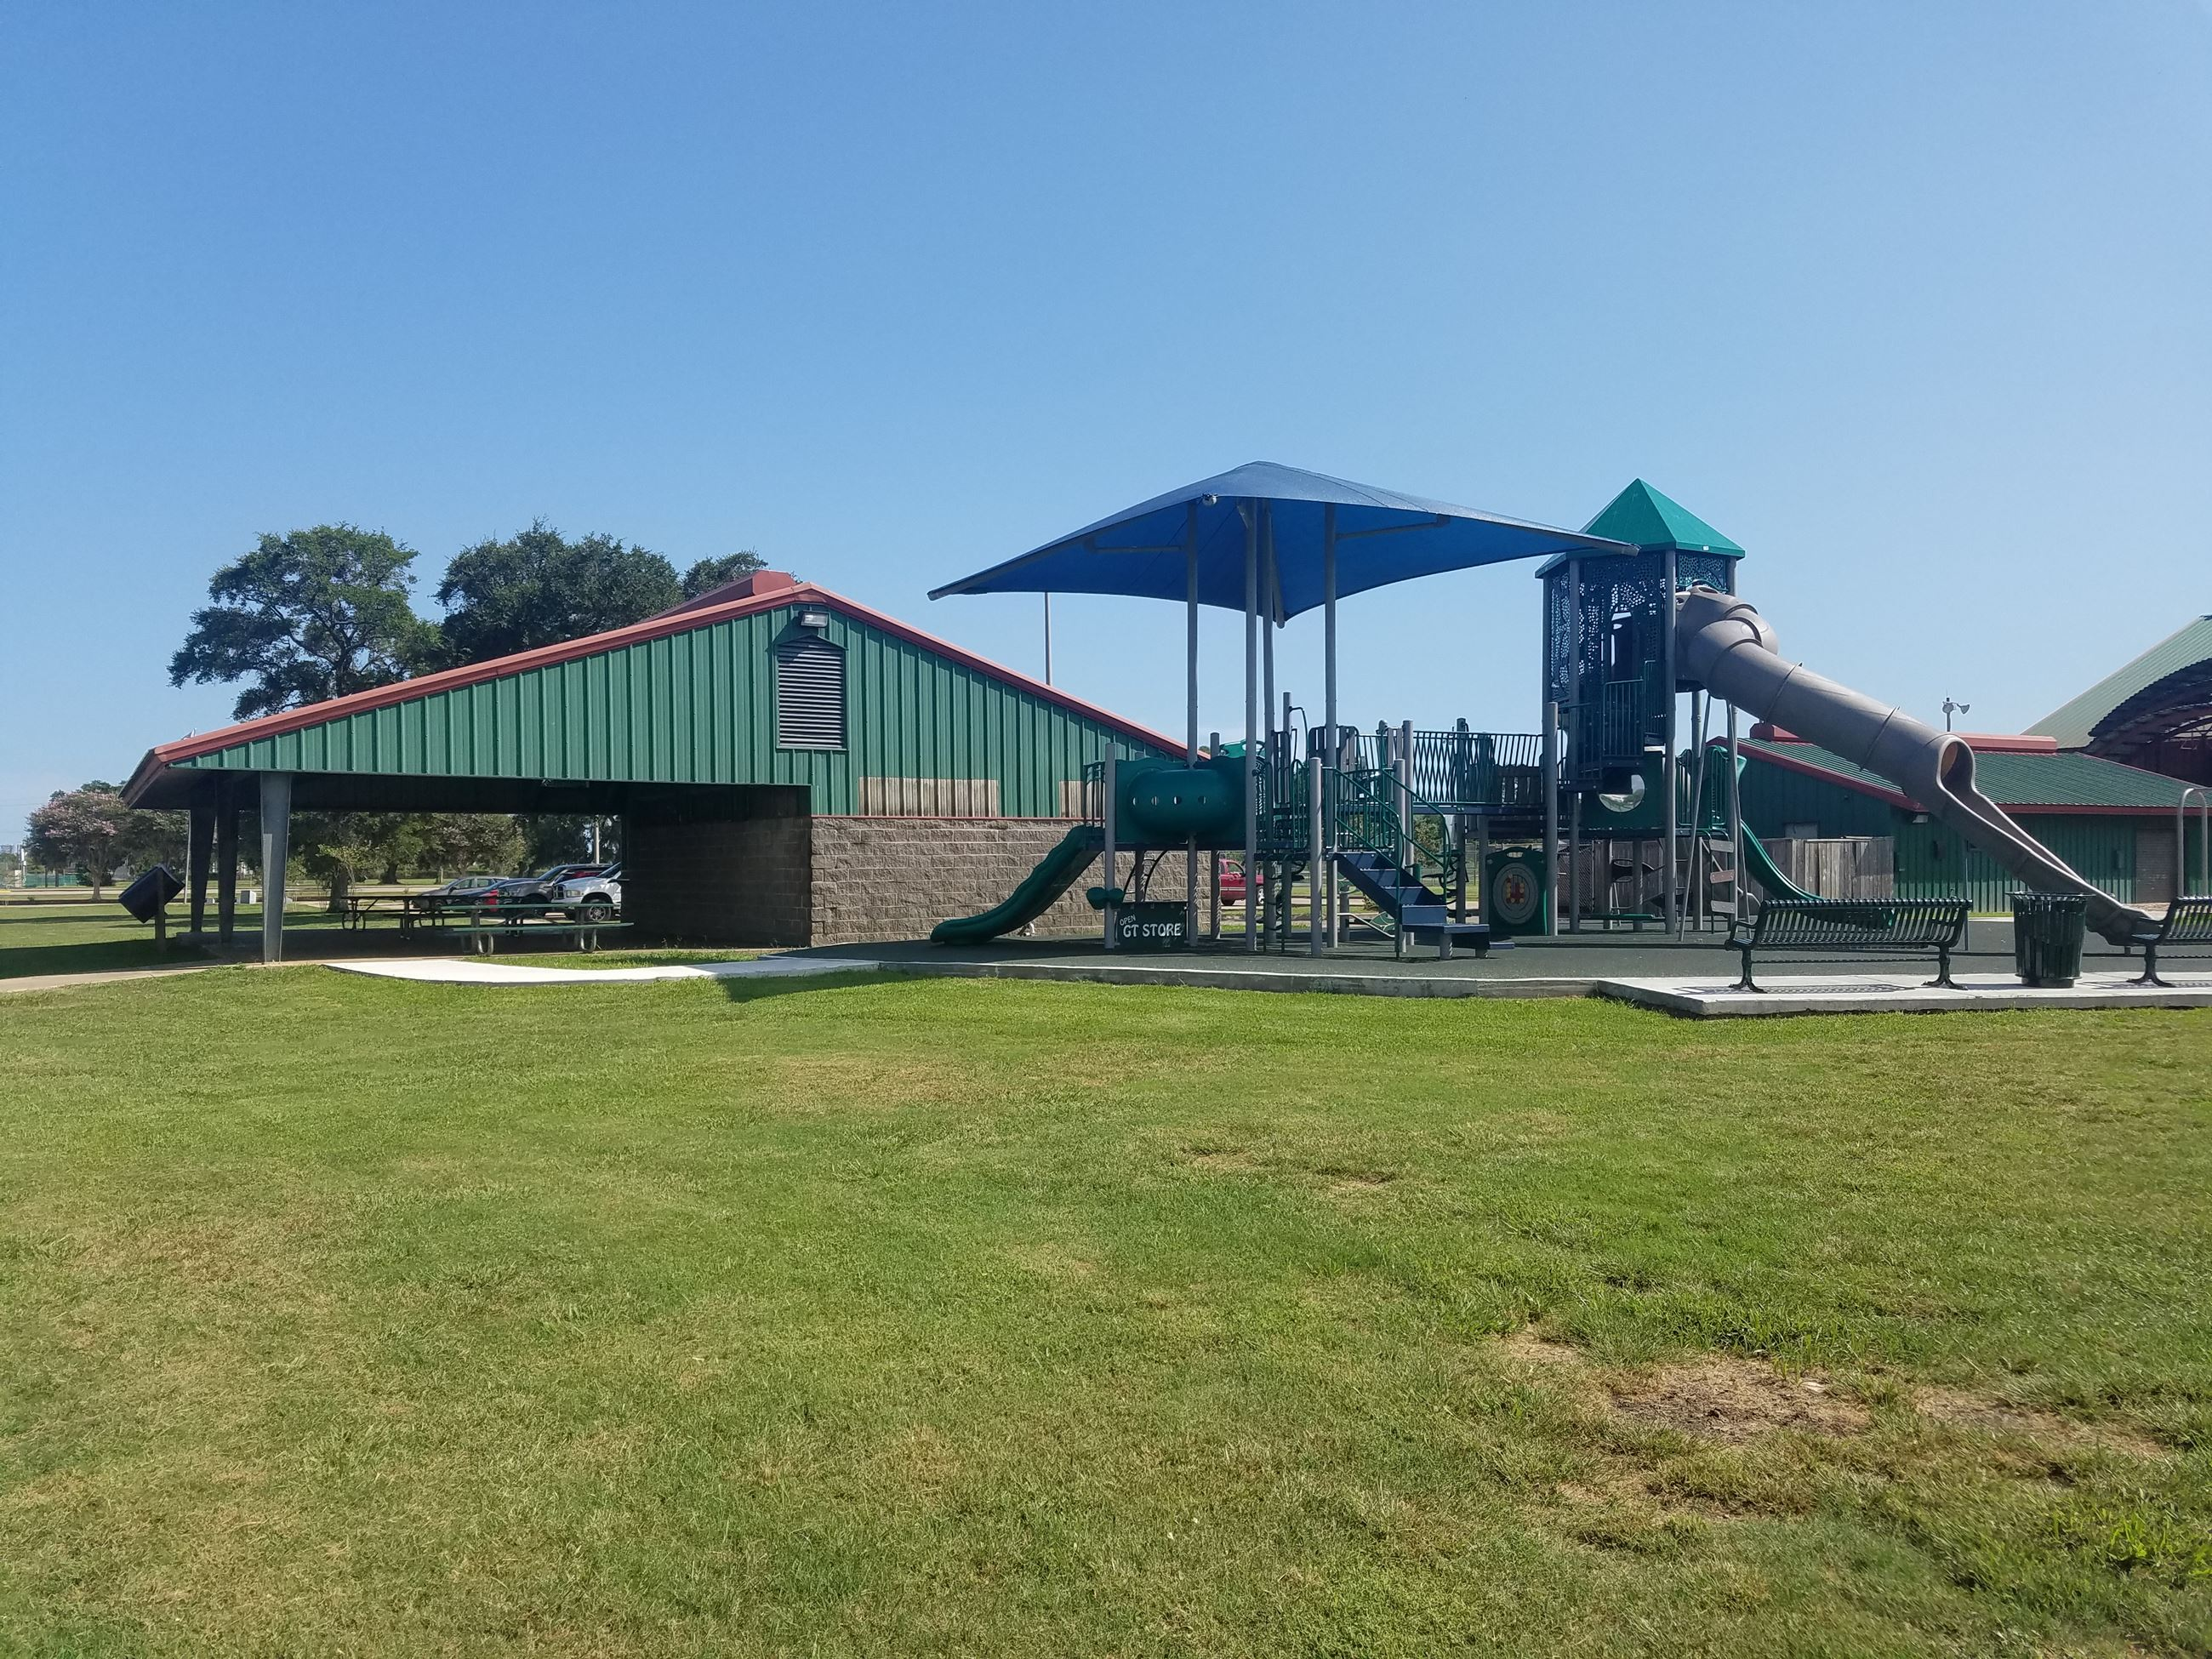 MacLean Small Pavilion and Playground